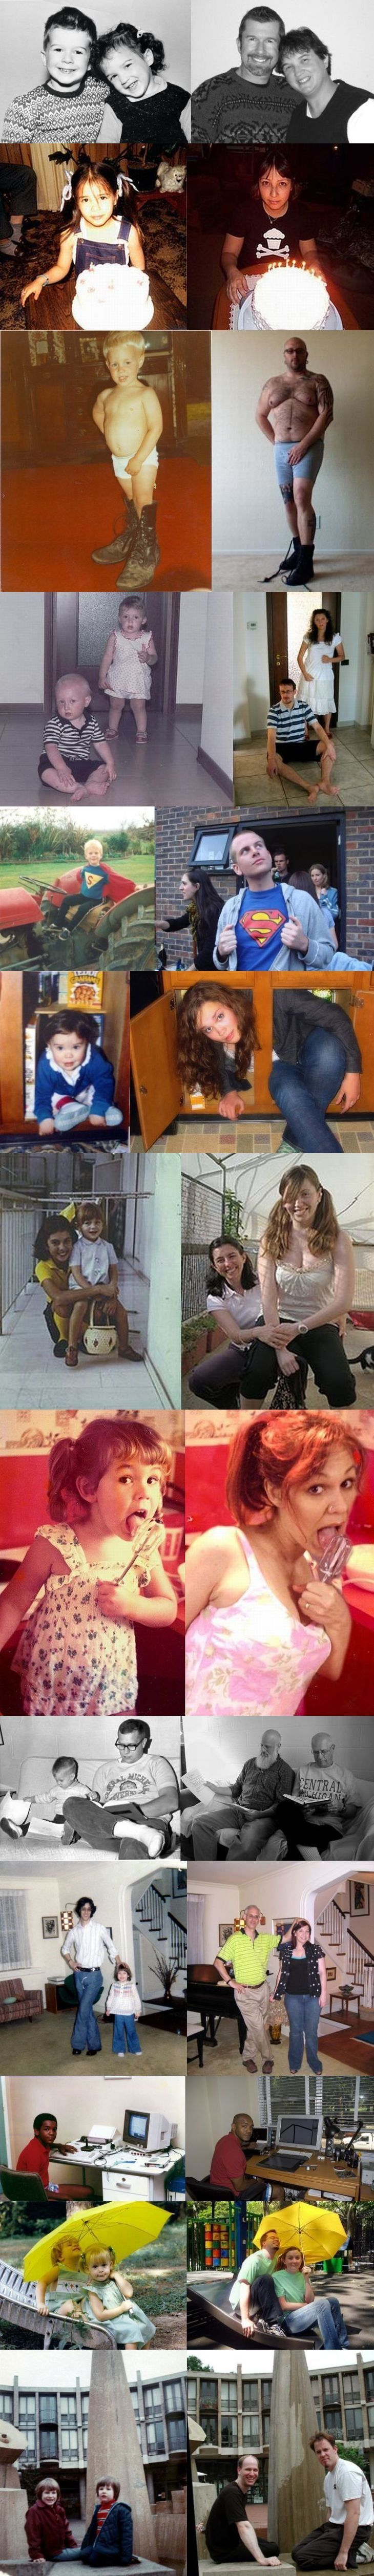 Recreating childhood photos - hilarious gift for parents. I want to do this & I know just the picture!!!Funny Gift, Hilarious Gift, Old Pictures, Families Photos, Gift Ideas For Parents, Recreation Pictures, Old Photos, Parents To Be Gift, Recreation Childhood Photos